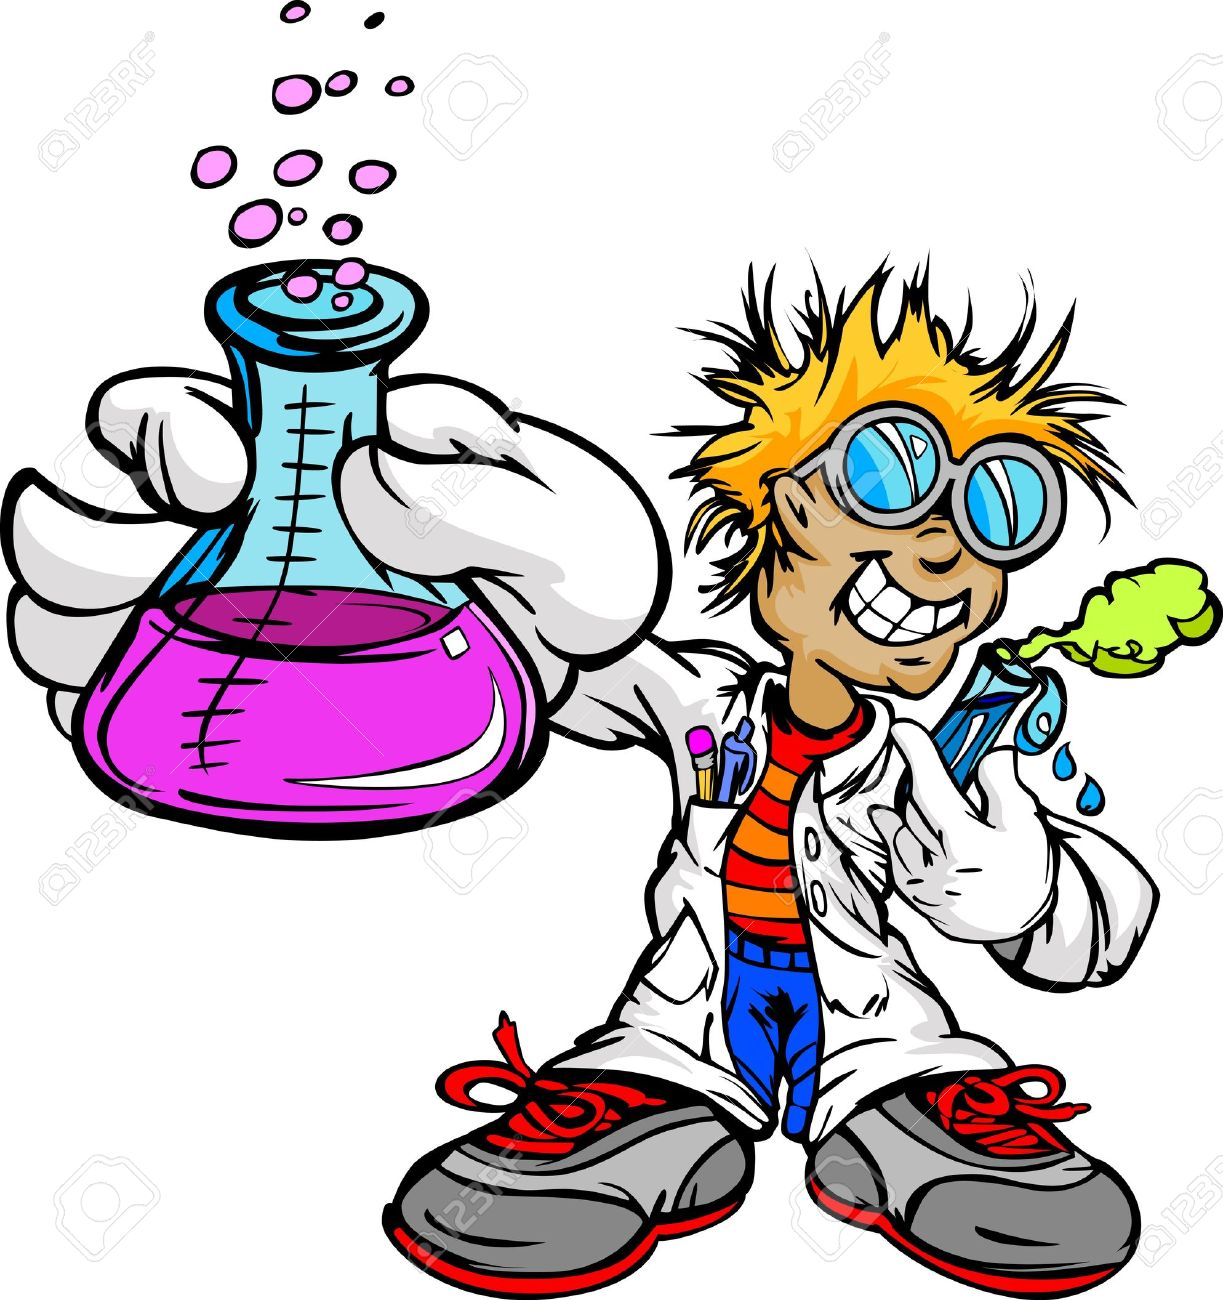 Pics photos clip art cartoon scientist with question mark stock - Scientist Cartoon Science Inventor Boy Cartoon Student With Lab Coat And Scientific Experiment Equipment Illustration